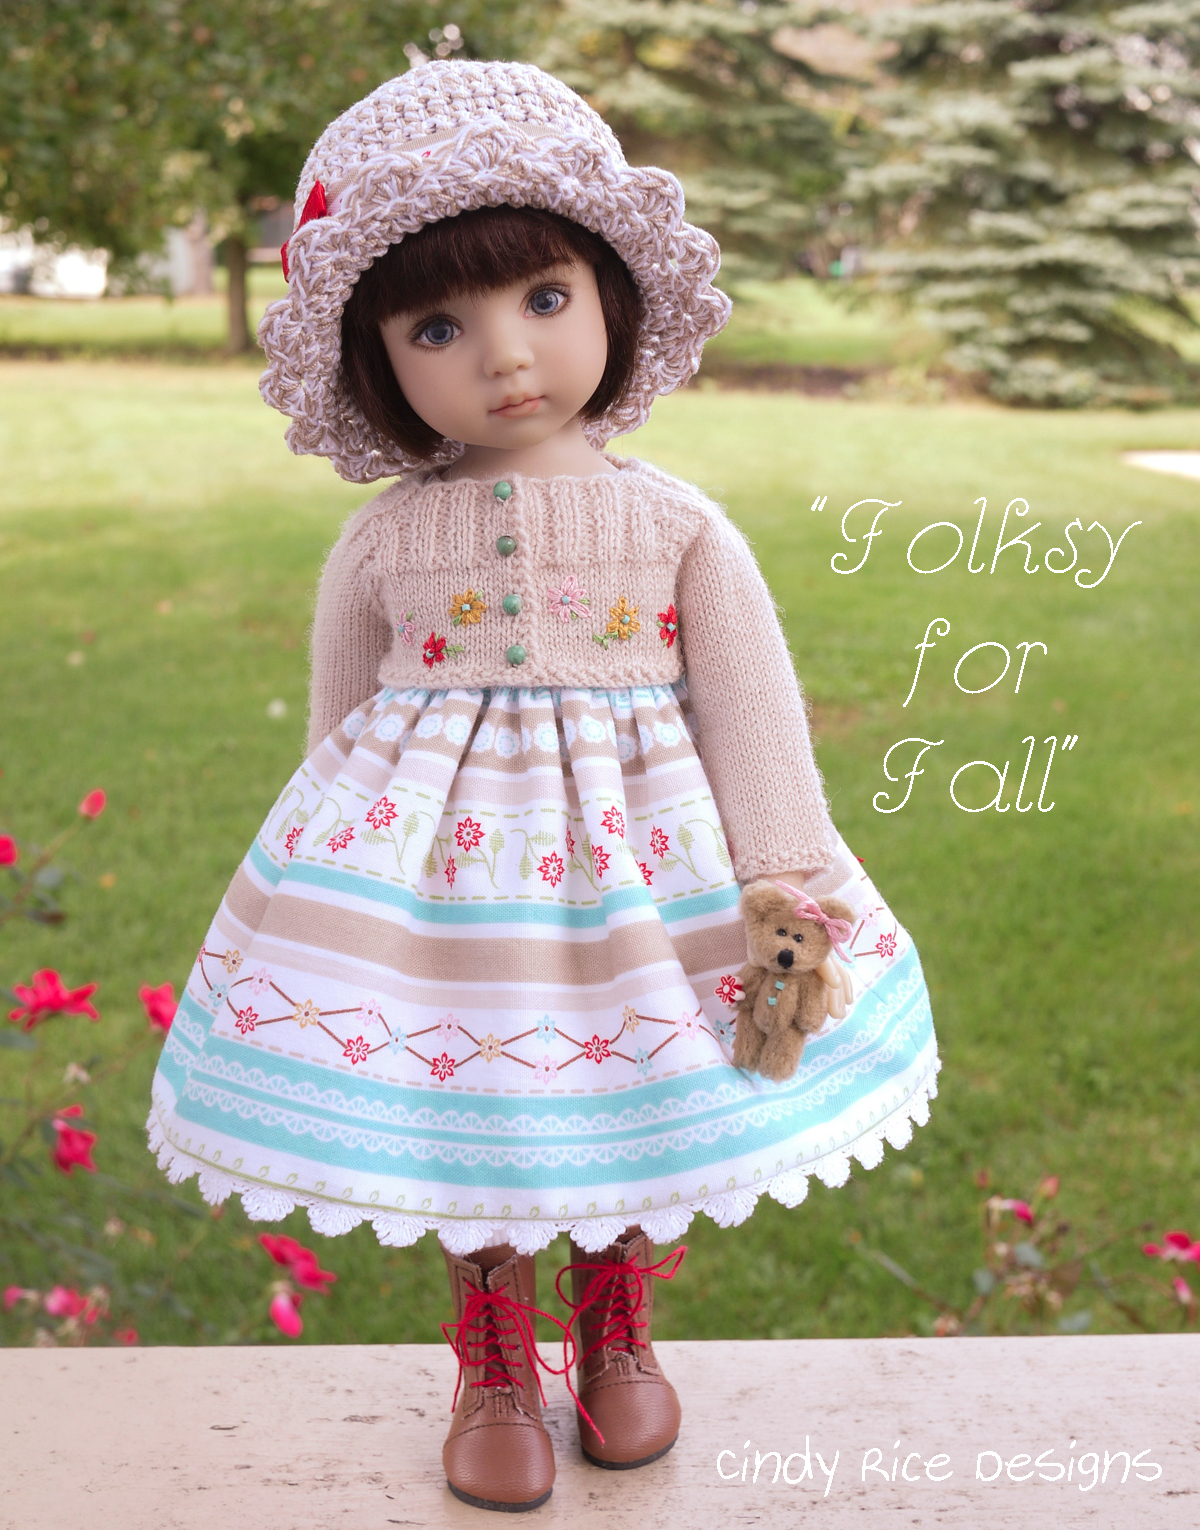 folksy for fall 872